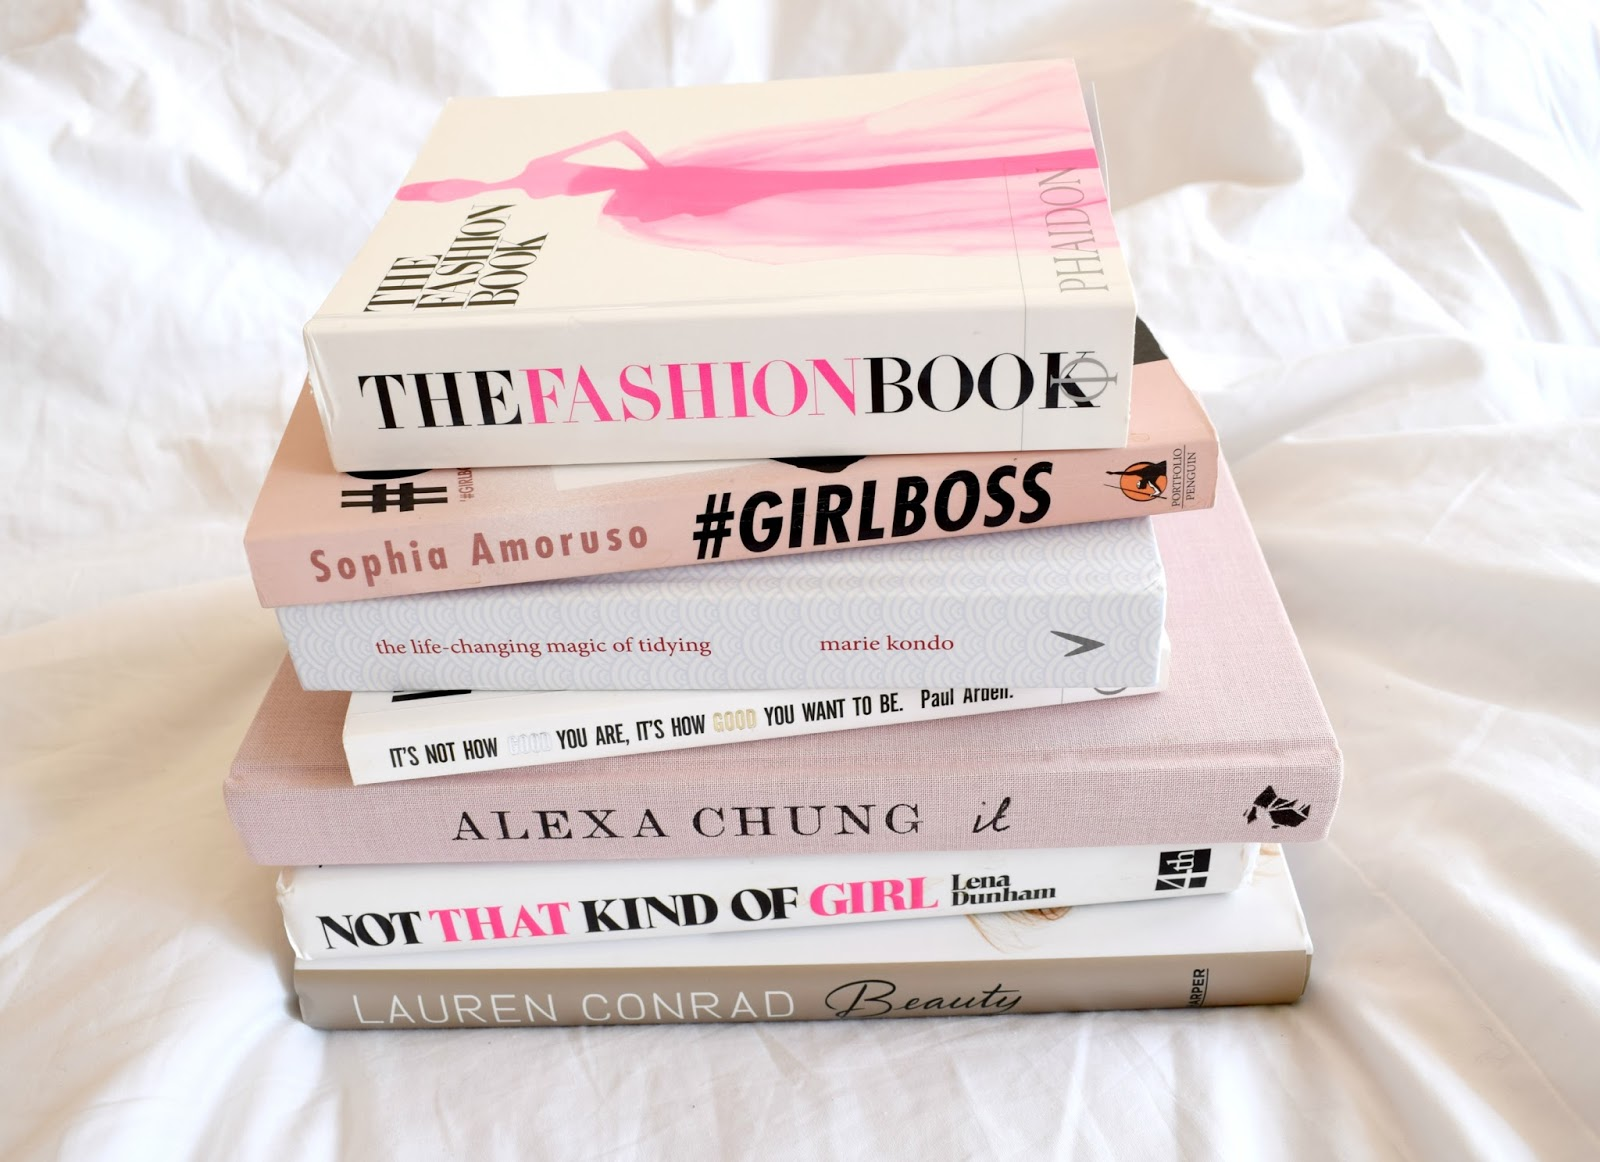 Blogger Books: Are They Worth Reading?